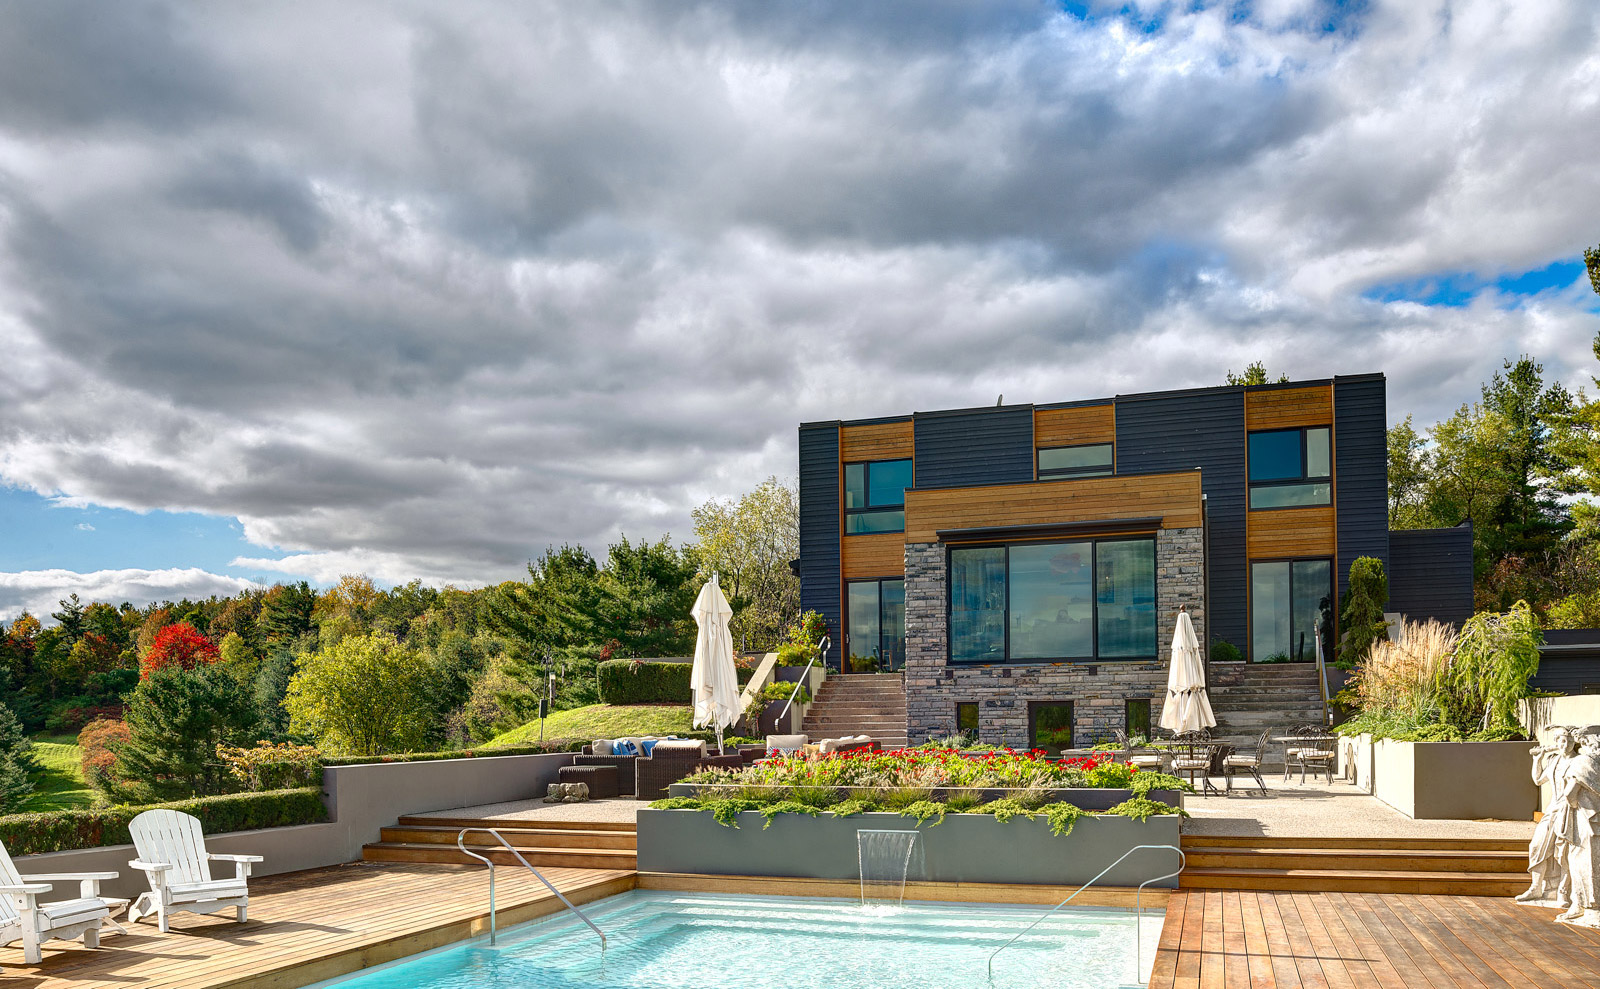 King City House landscaped exterior with pool and Ipe decking